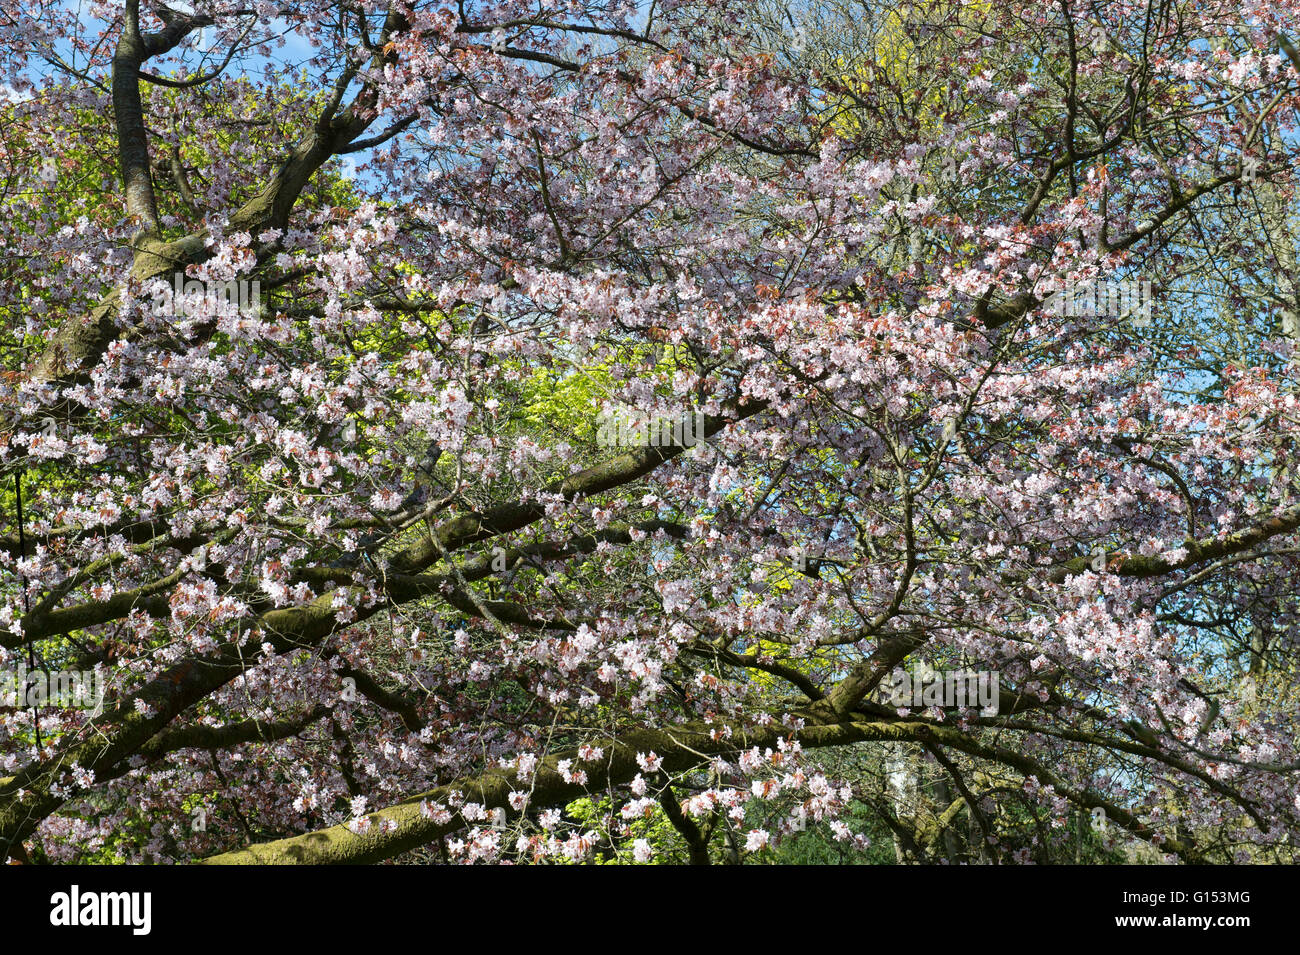 Prunus Sargentii. Sargents cherry tree blossom at Westonbirt Arboretum. Gloucestershire, England Stock Photo